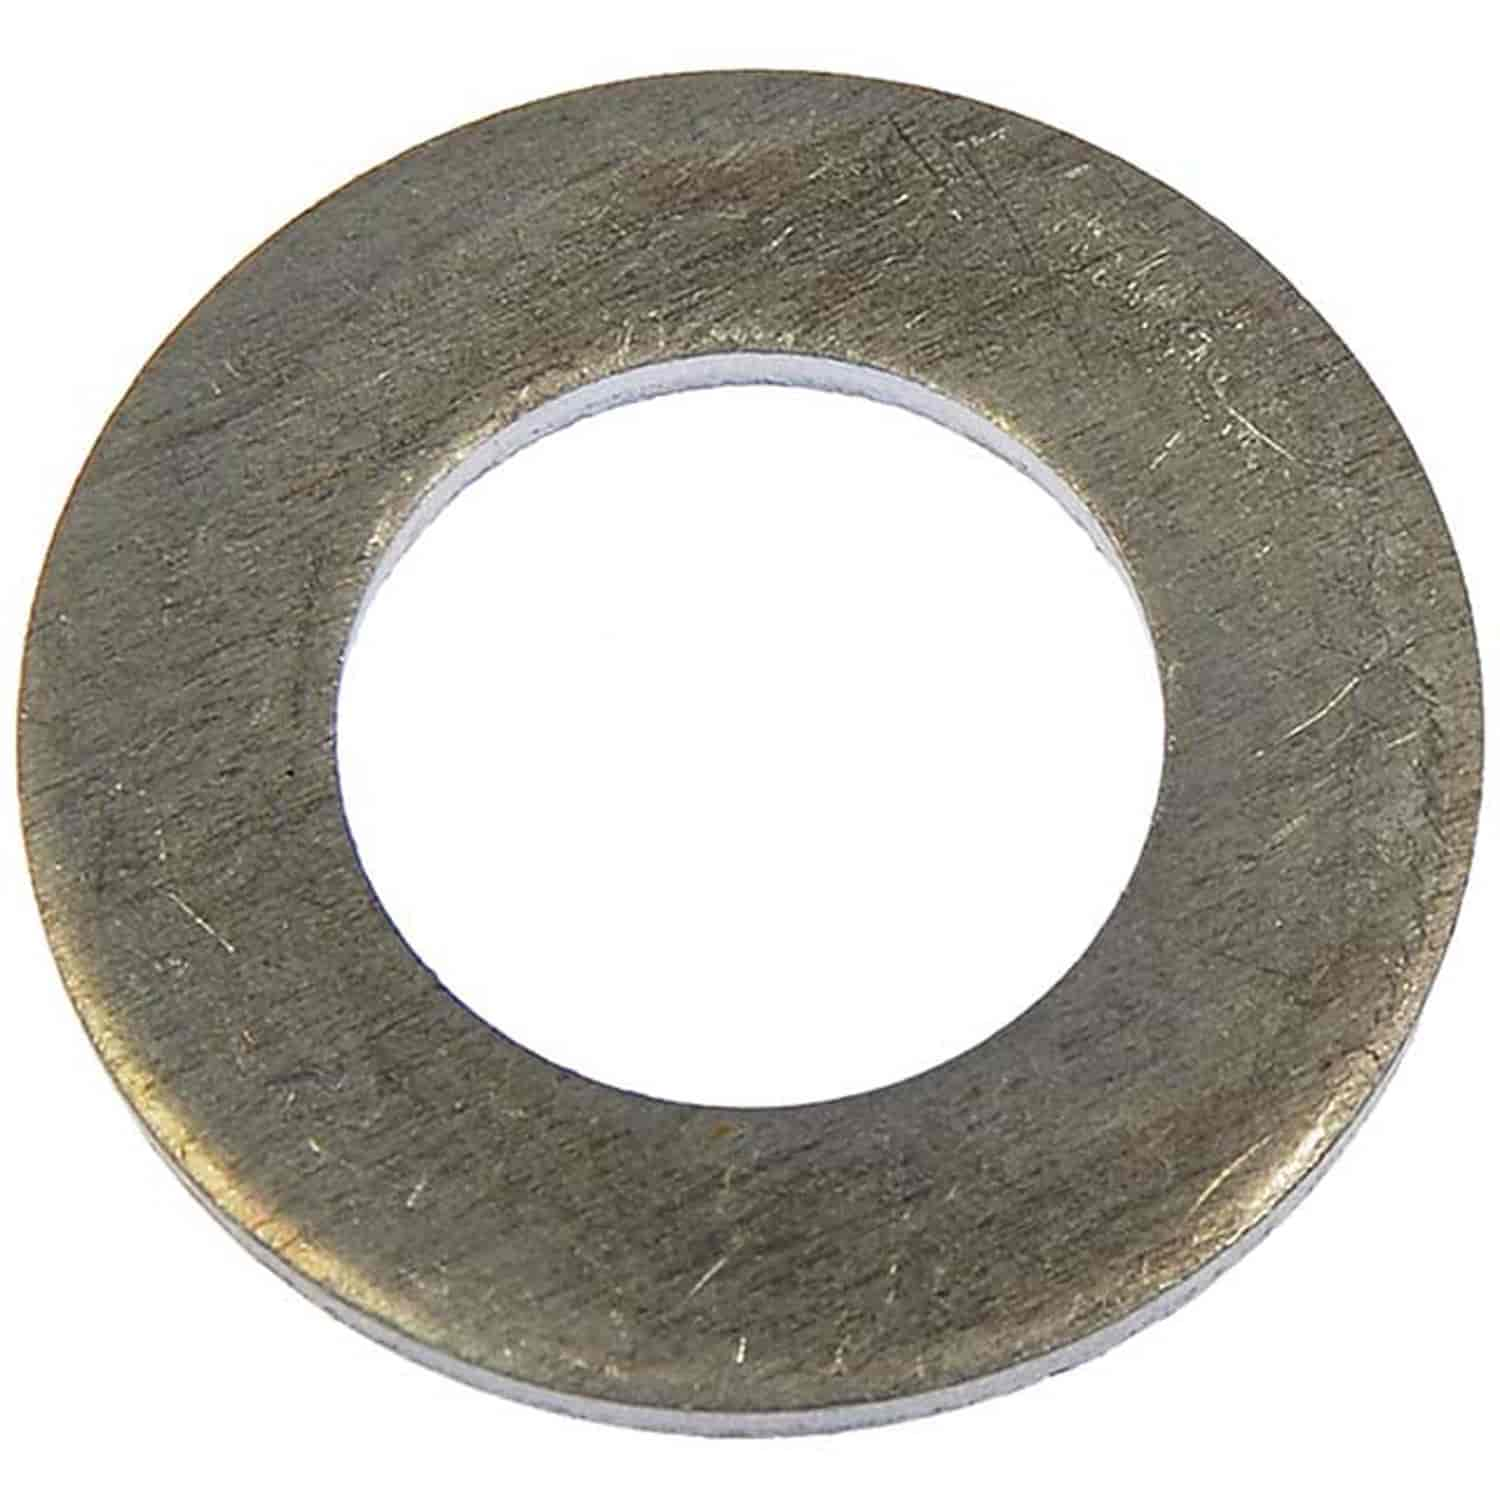 Dorman Products 095-143.1: Drain Plug Gasket 1964-1995 AMC